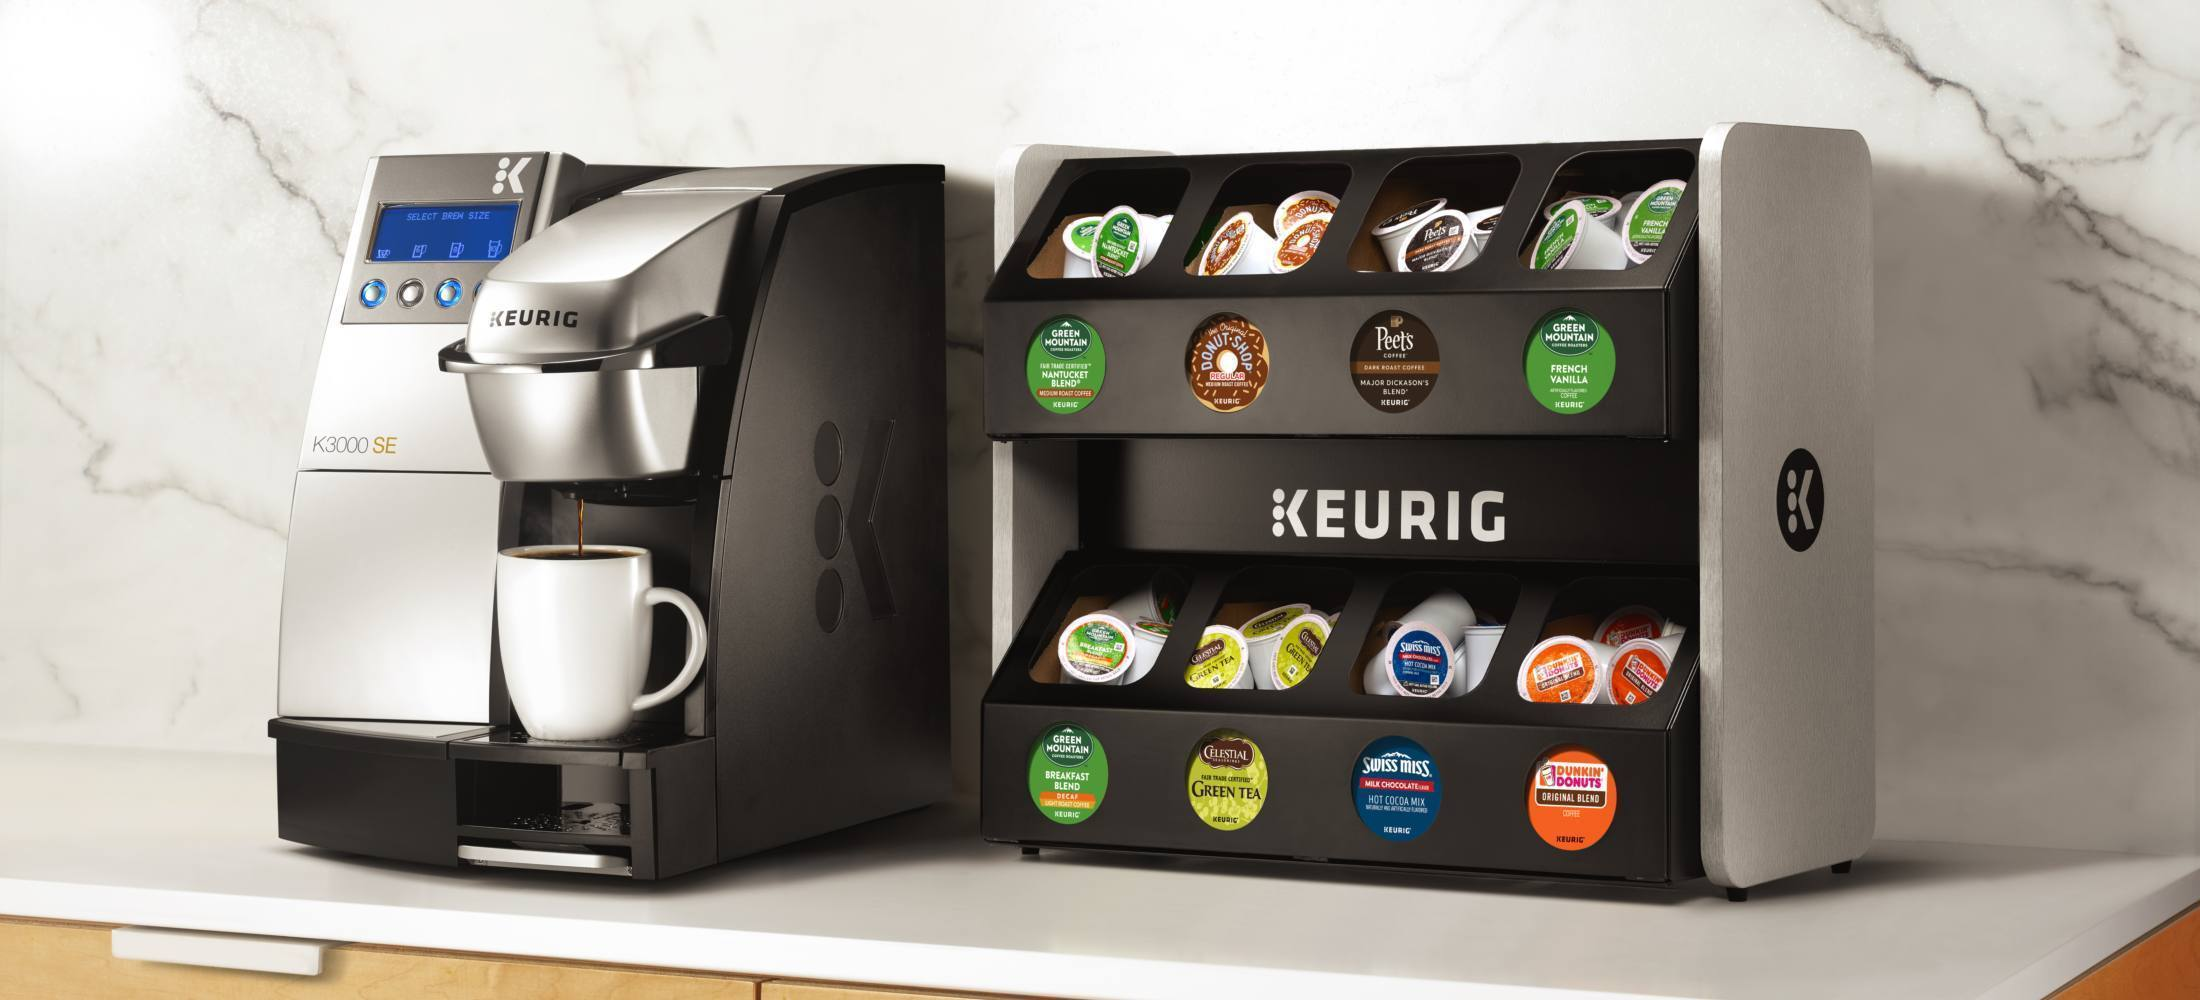 Keurig Not Pumping Water?